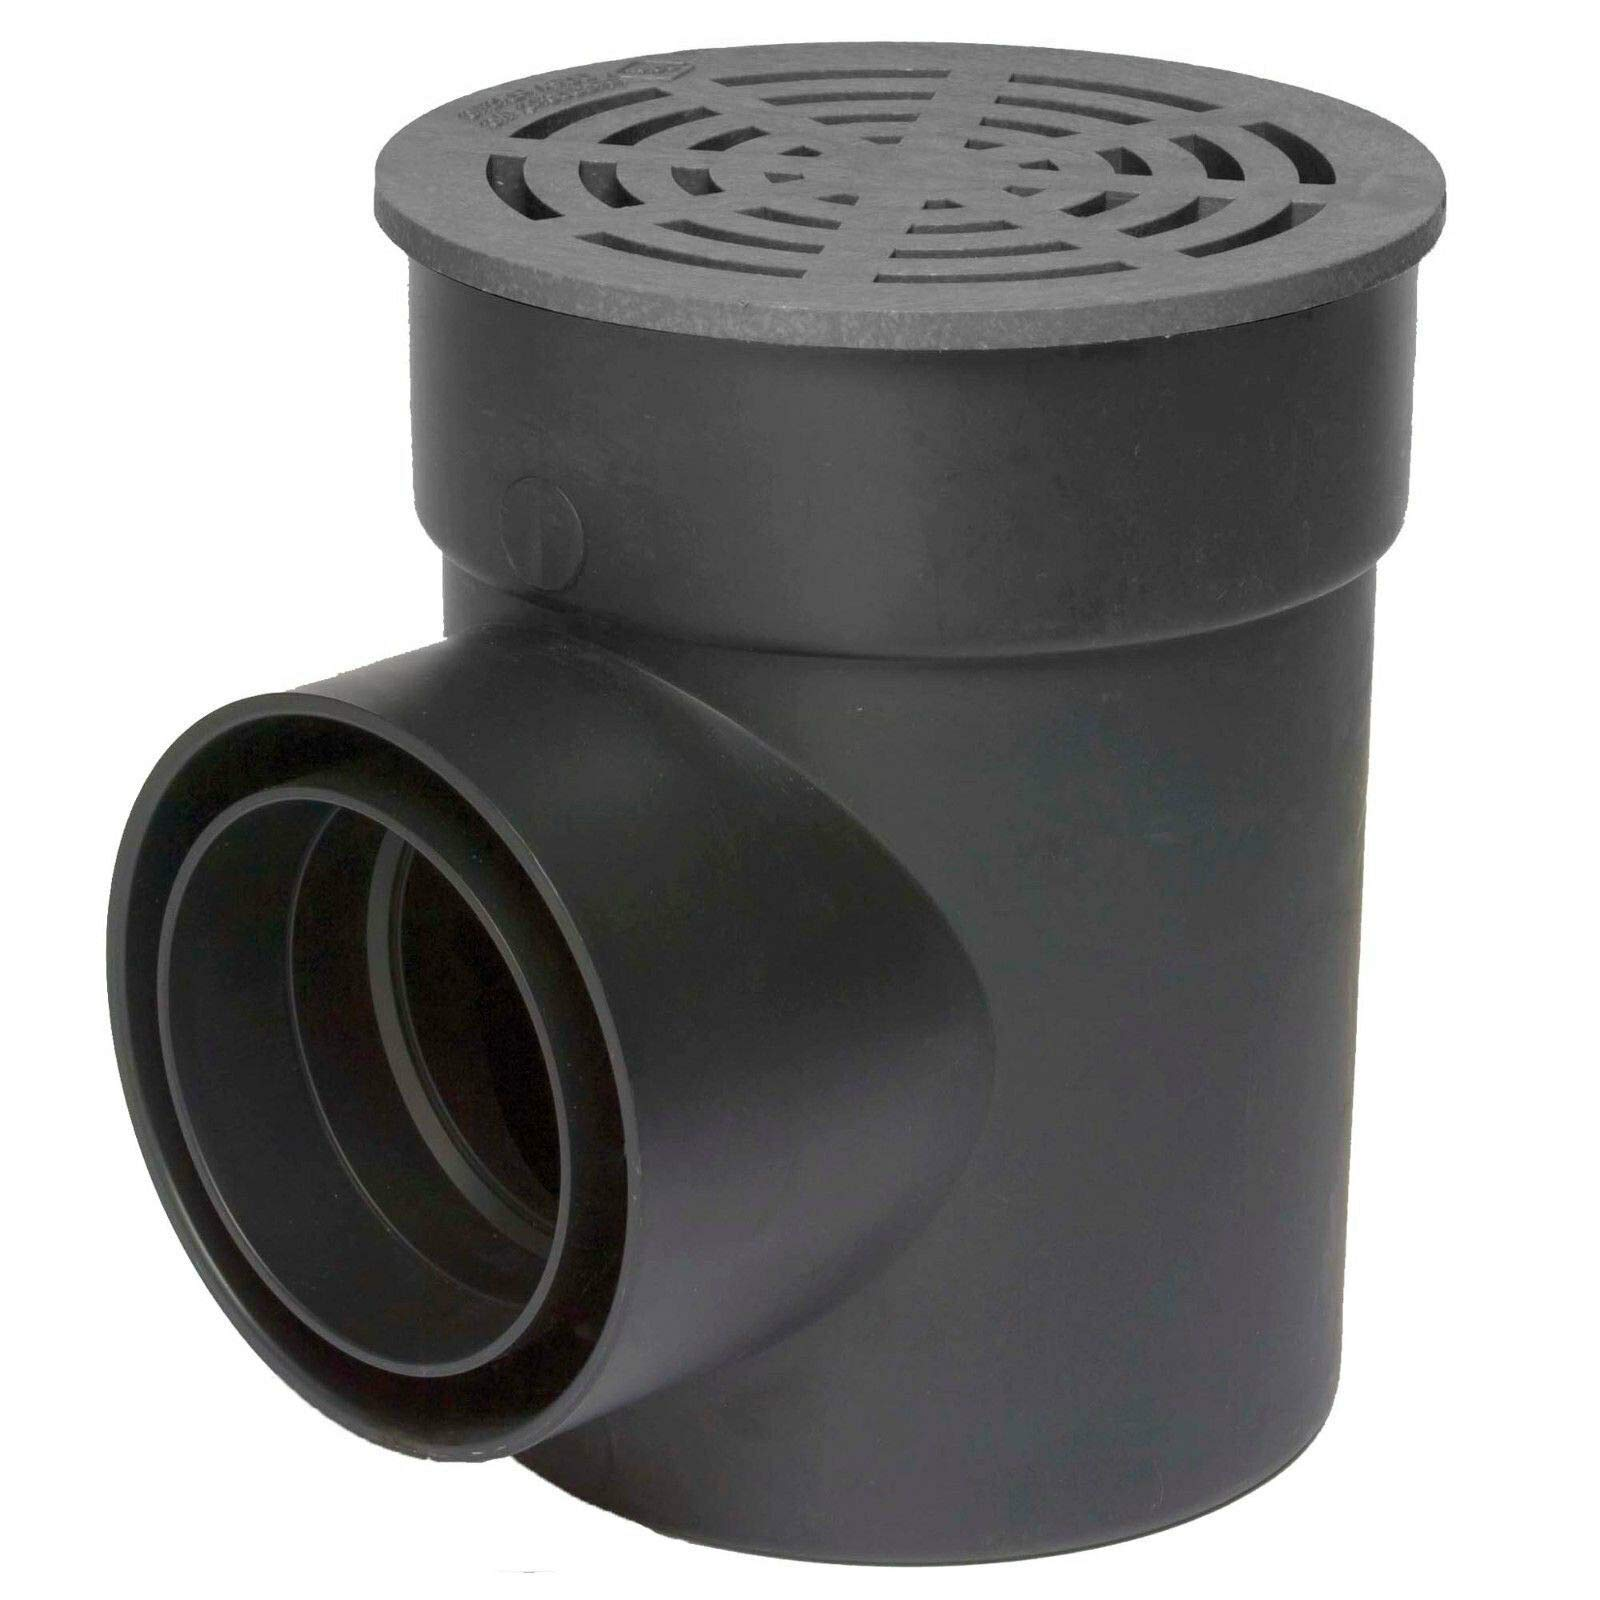 Use for Collecting Flow 6''NDS Speed-D Catch Basin & Grate